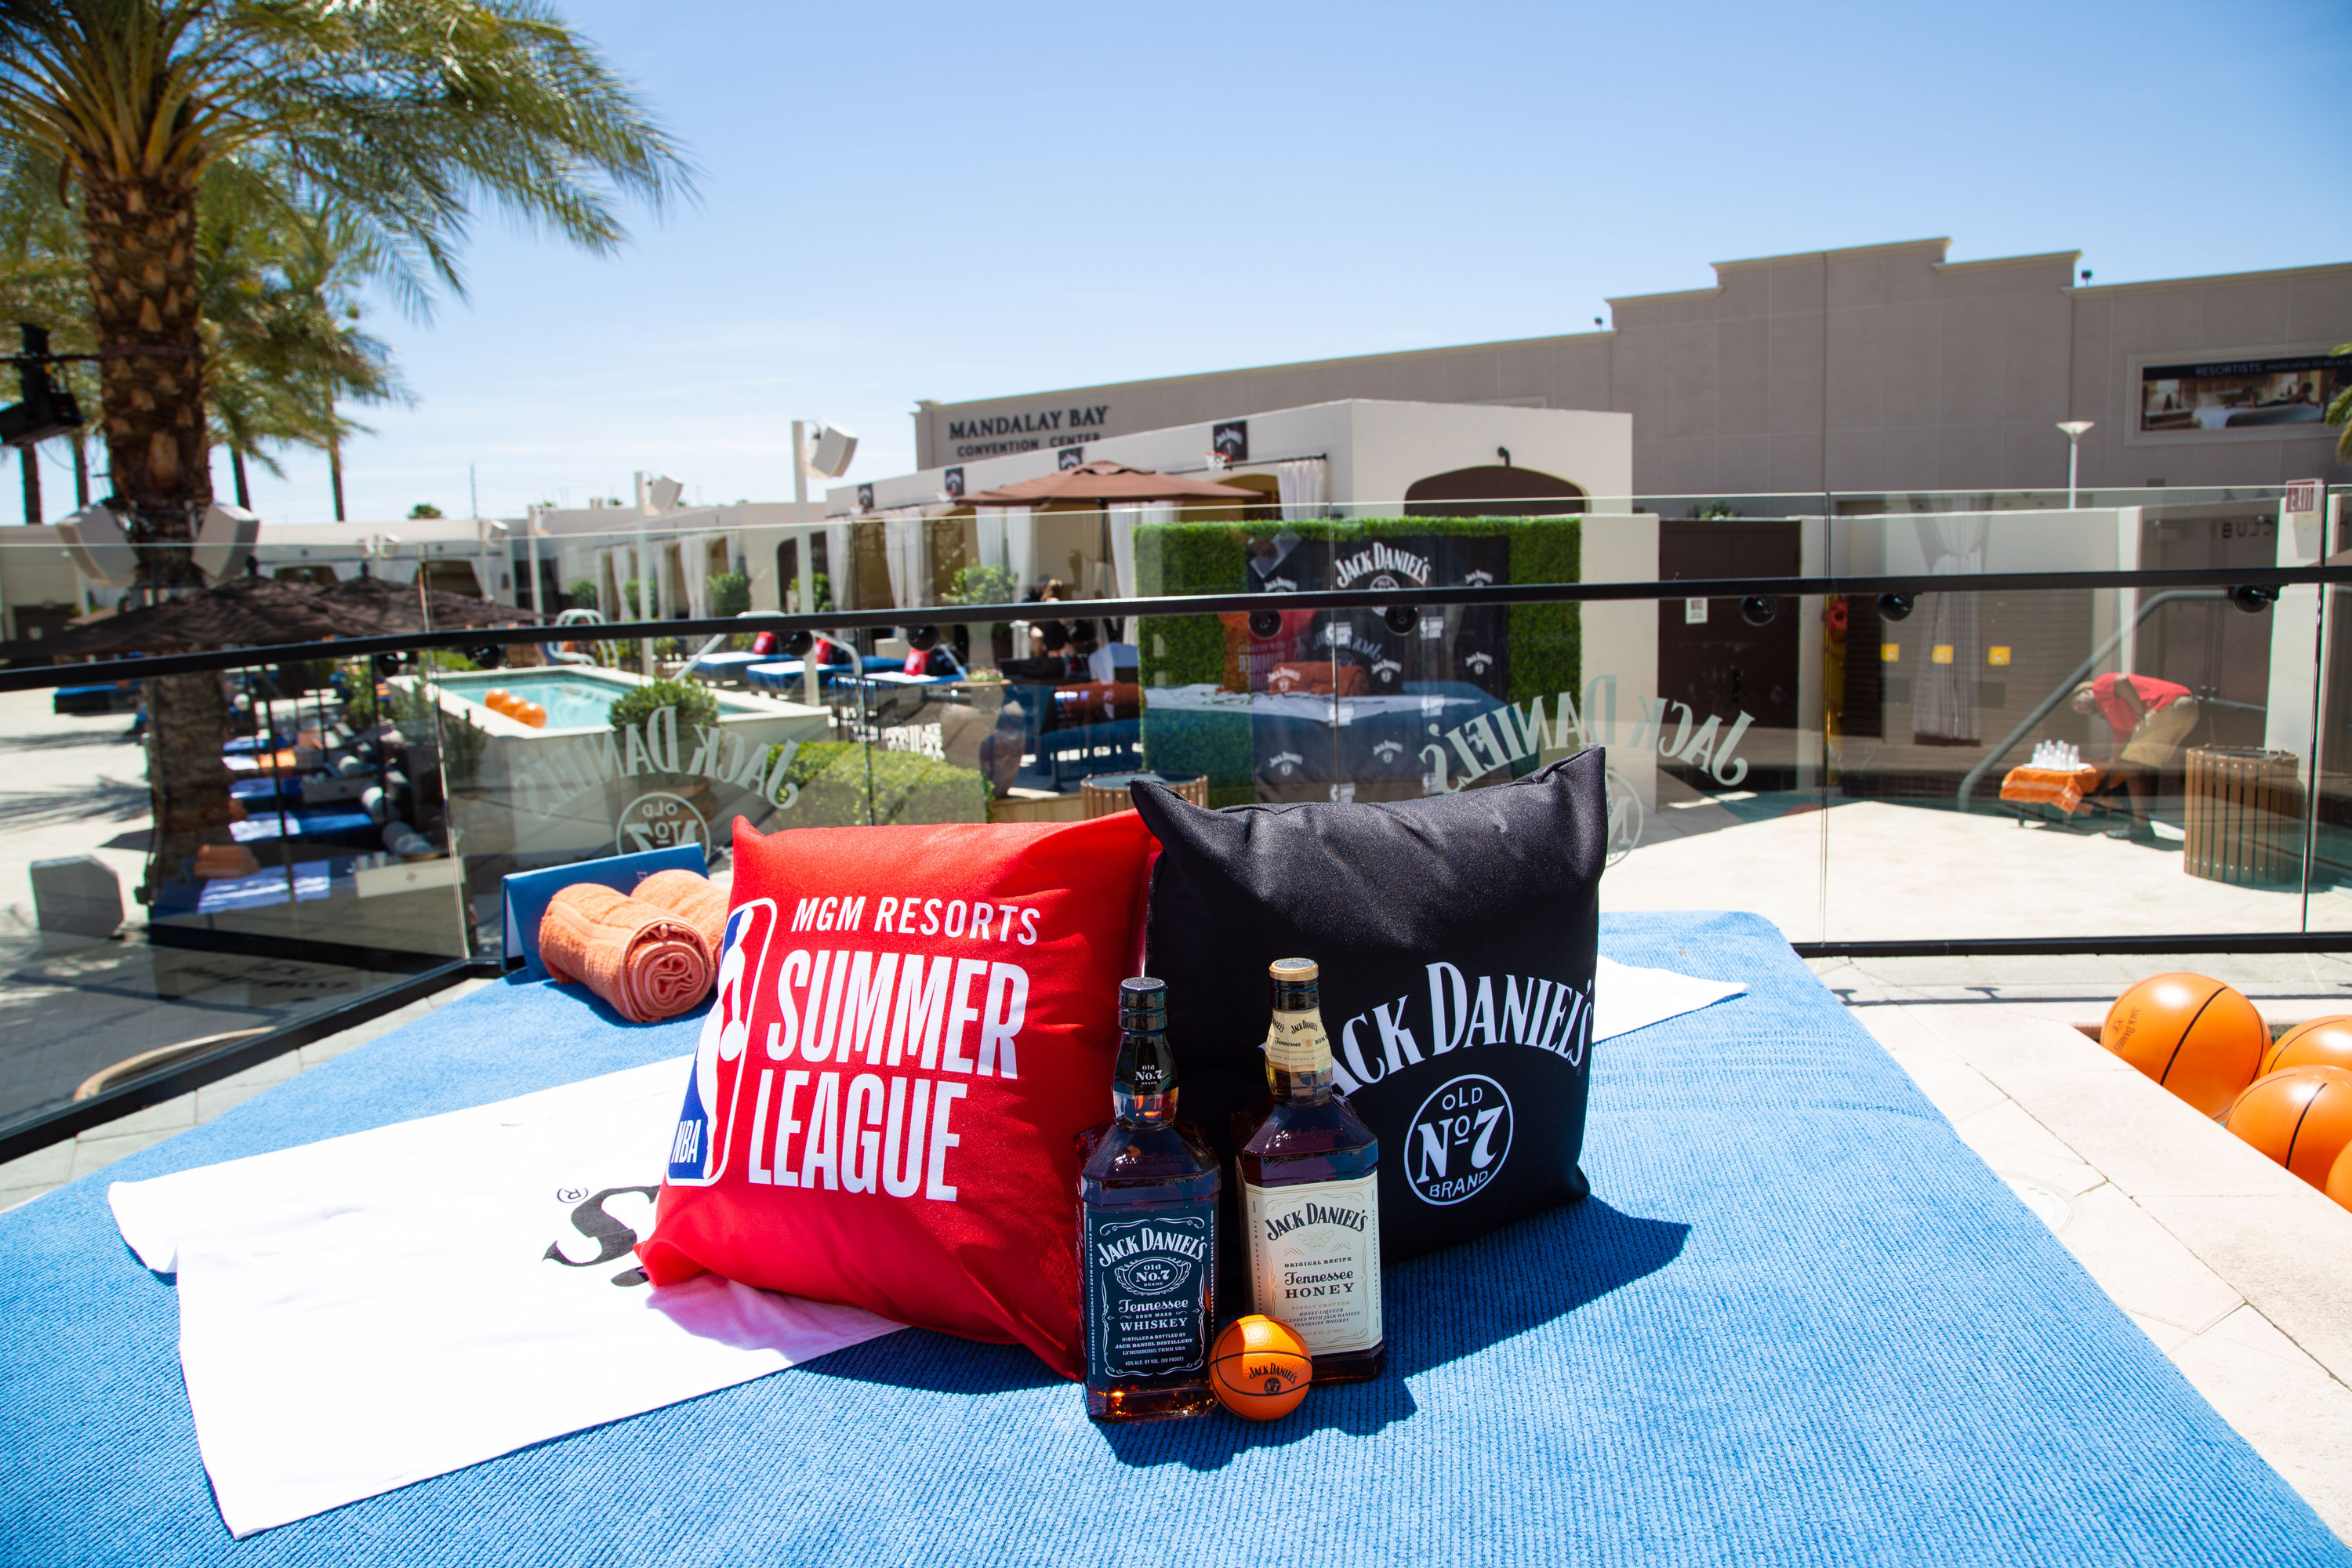 NBA Summer League pillows at Jack Daniel's NBA Summer League